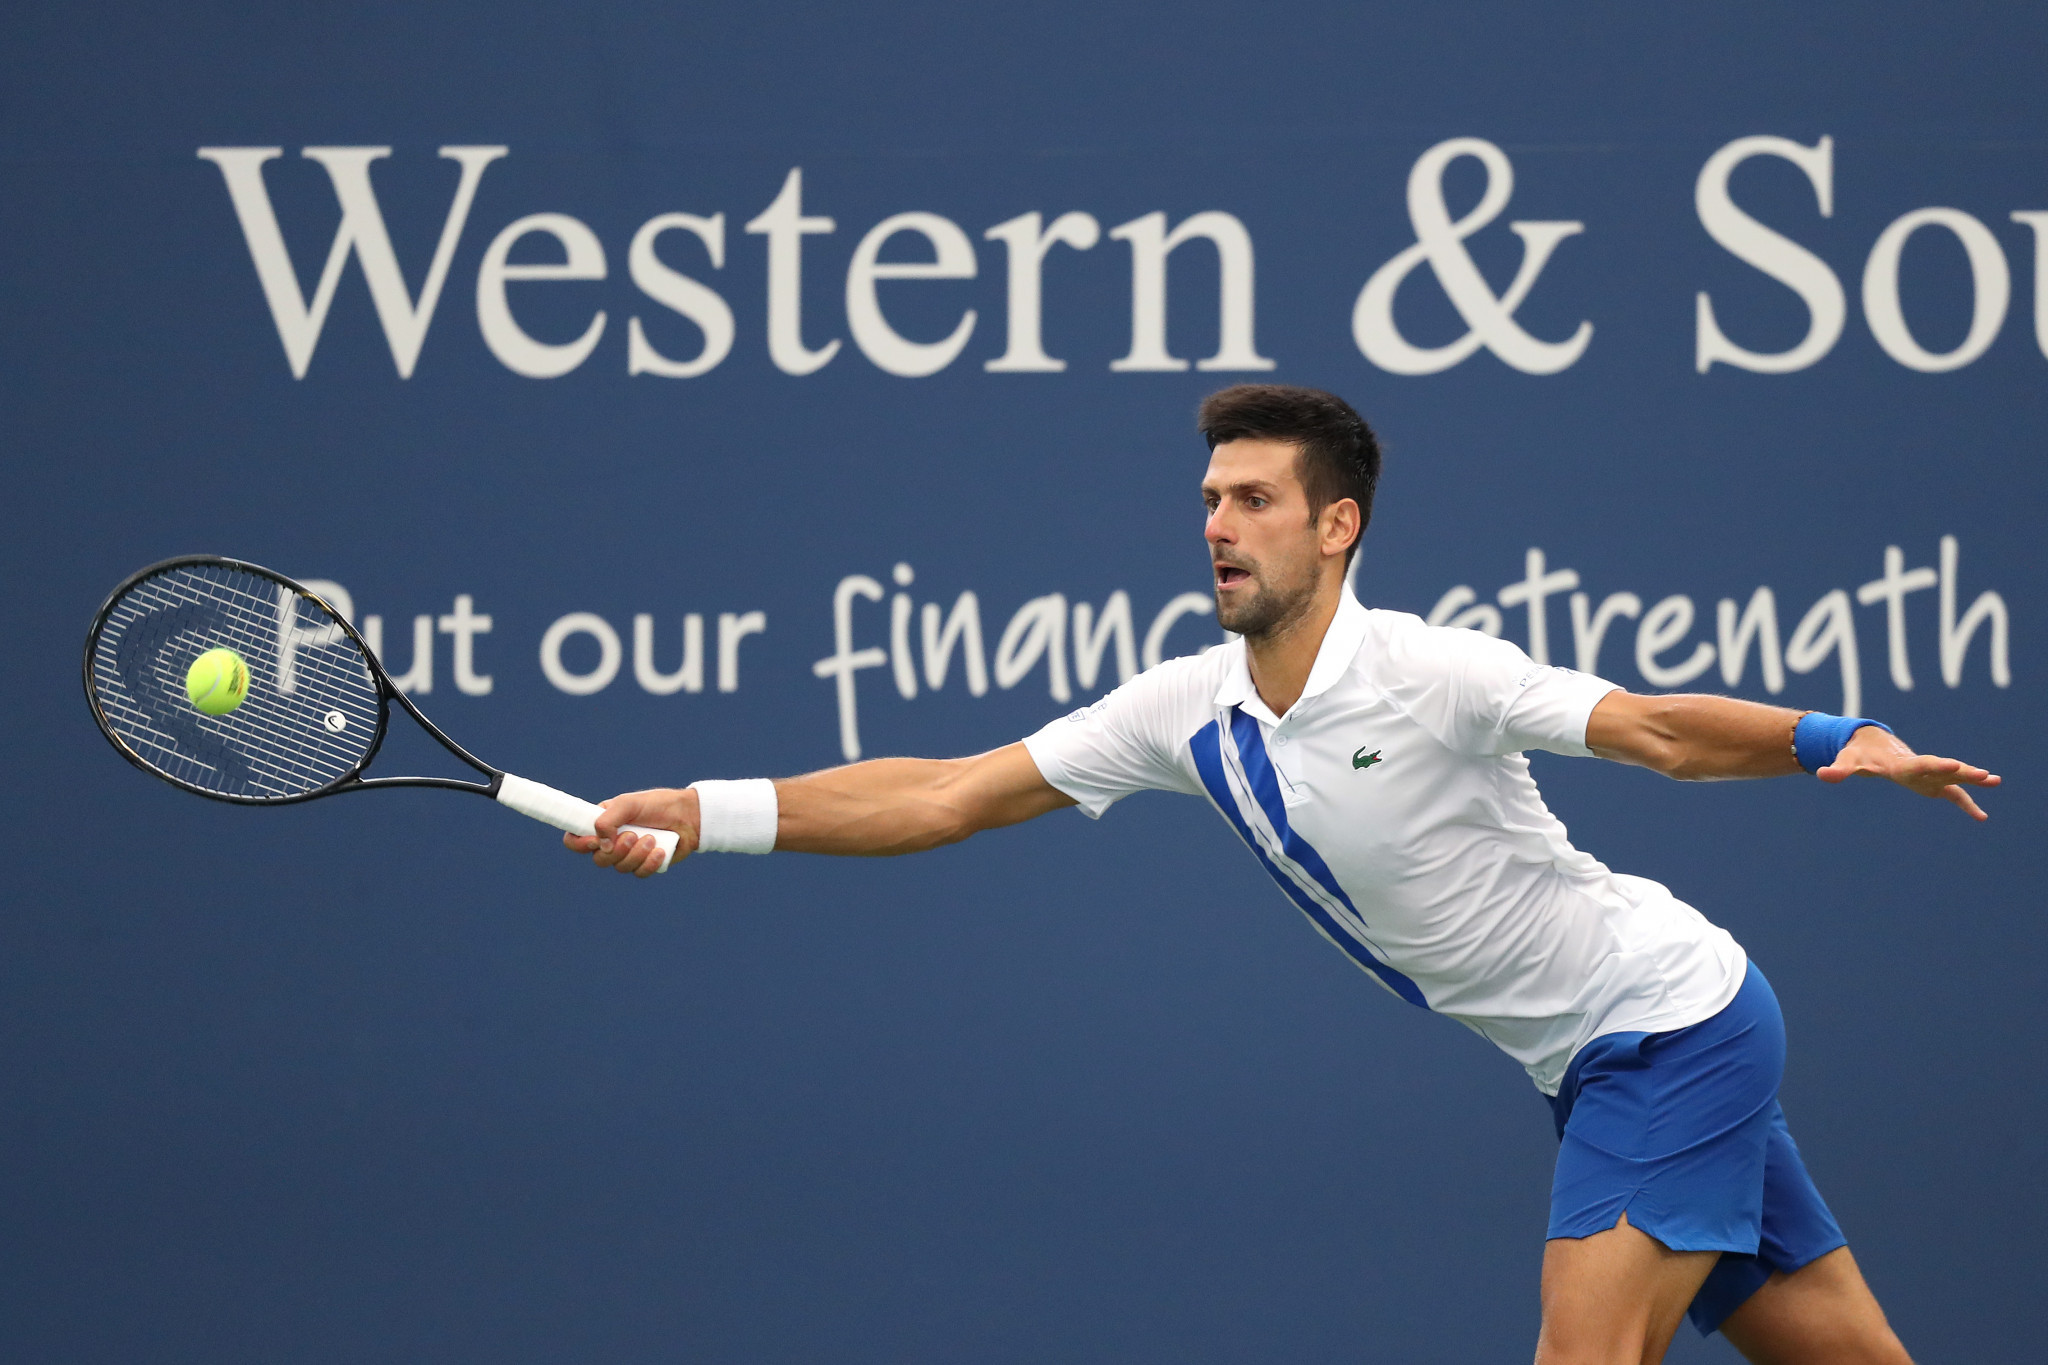 US Open to get underway following weeks of withdrawals and spat over breakaway players' association